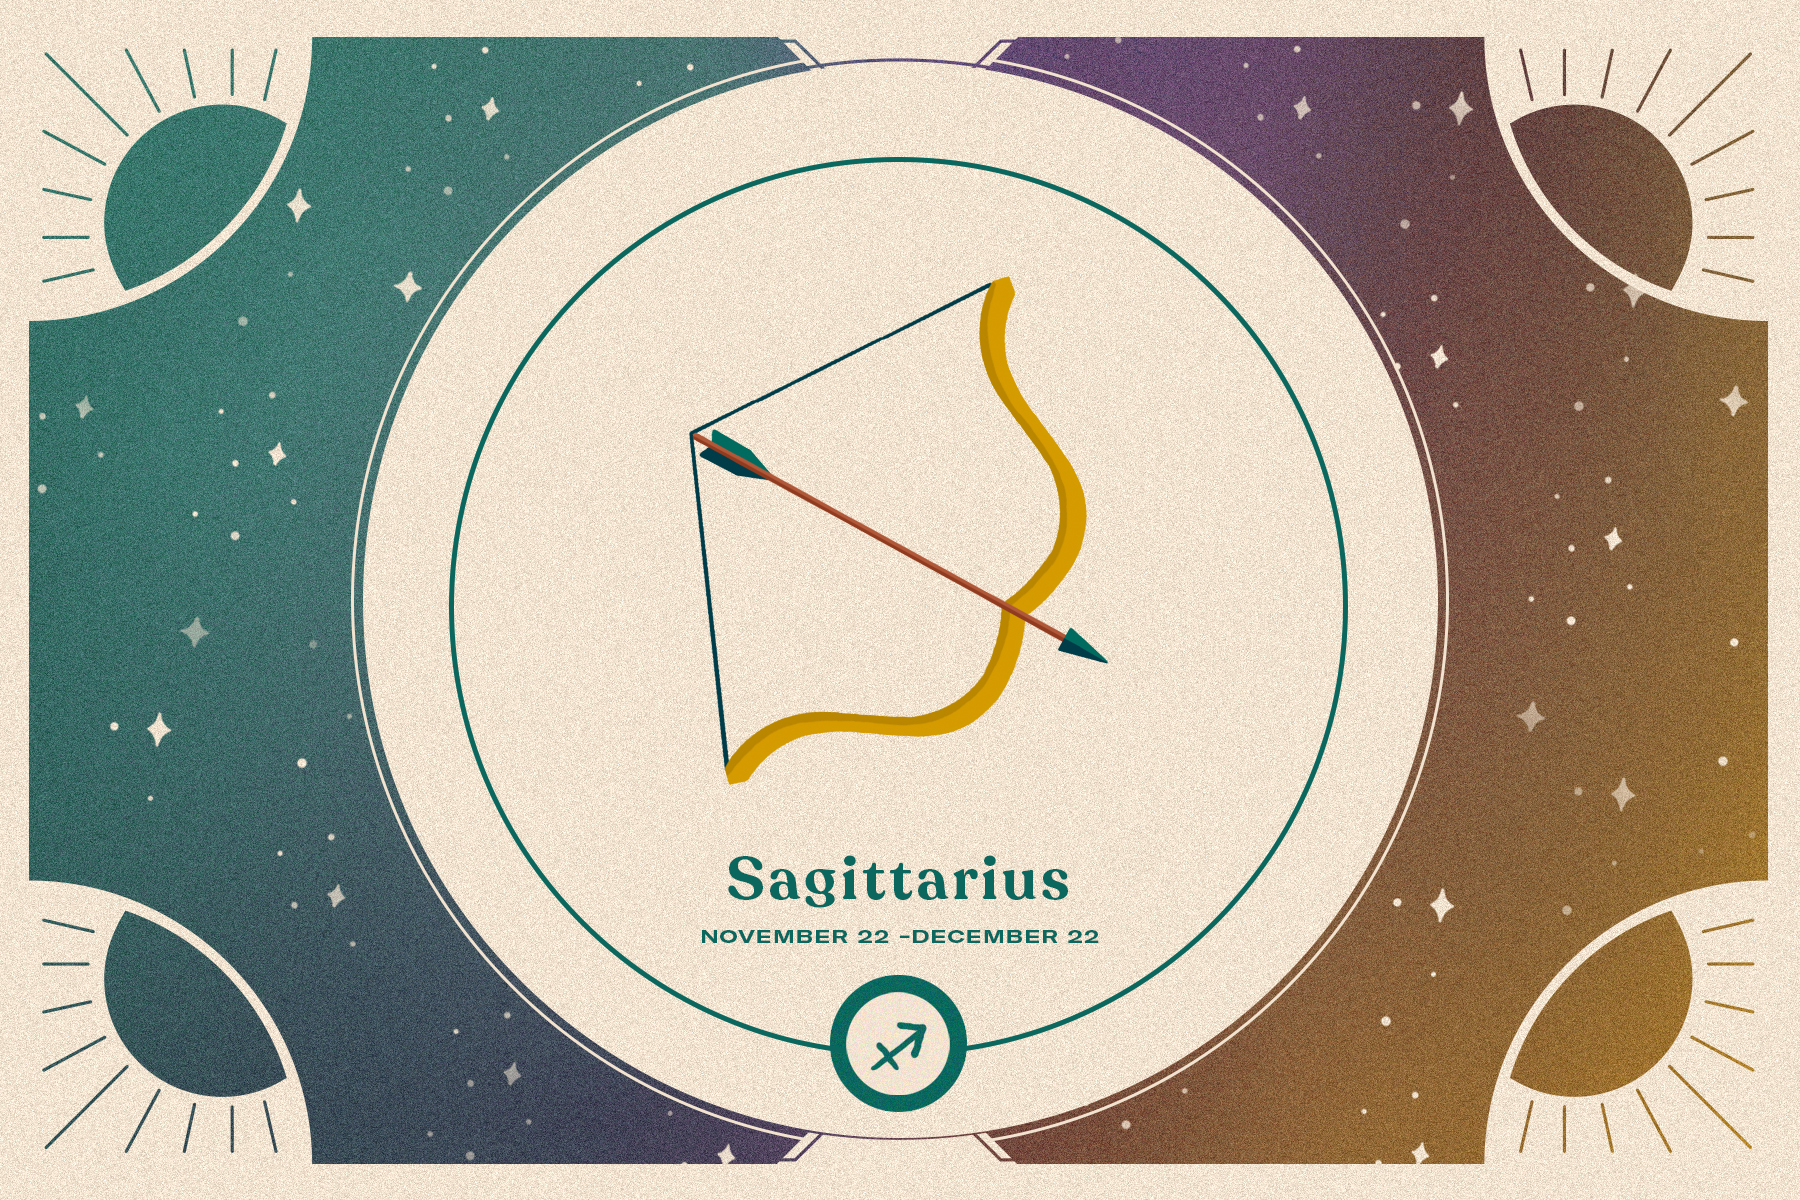 sagittarius zodiac sign meaning